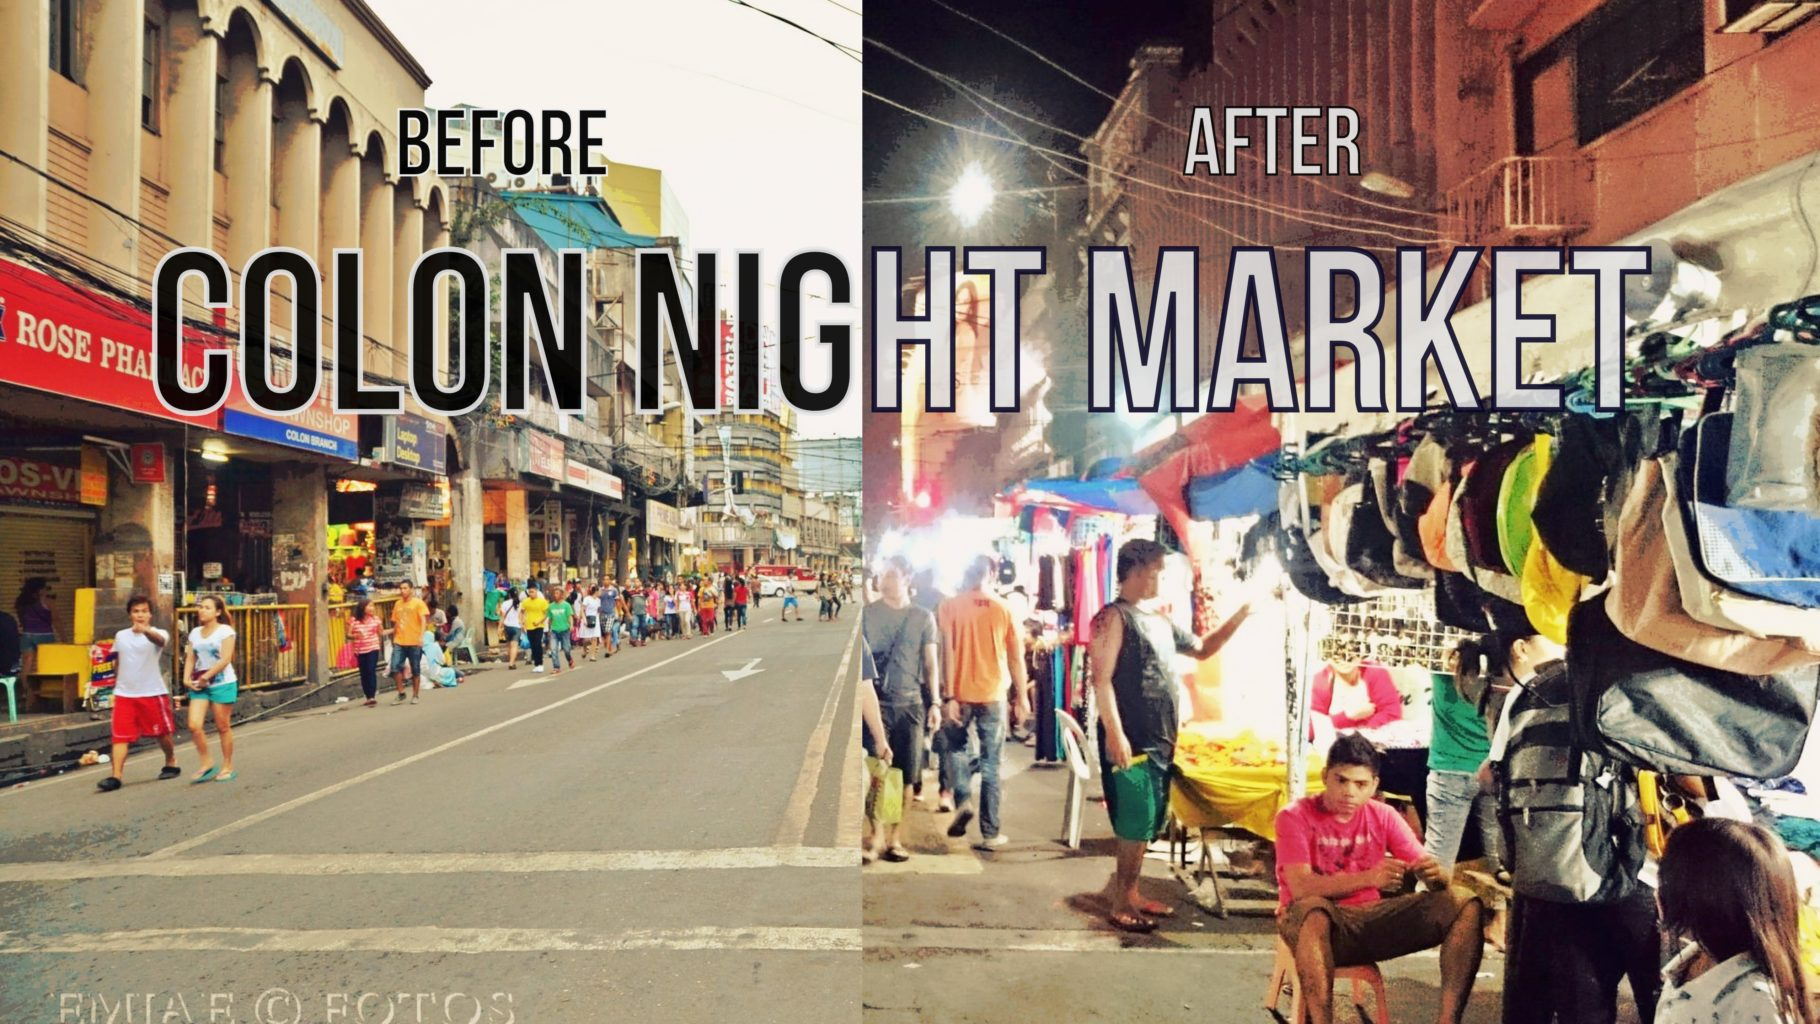 Colon Night Market: A Street Transformation